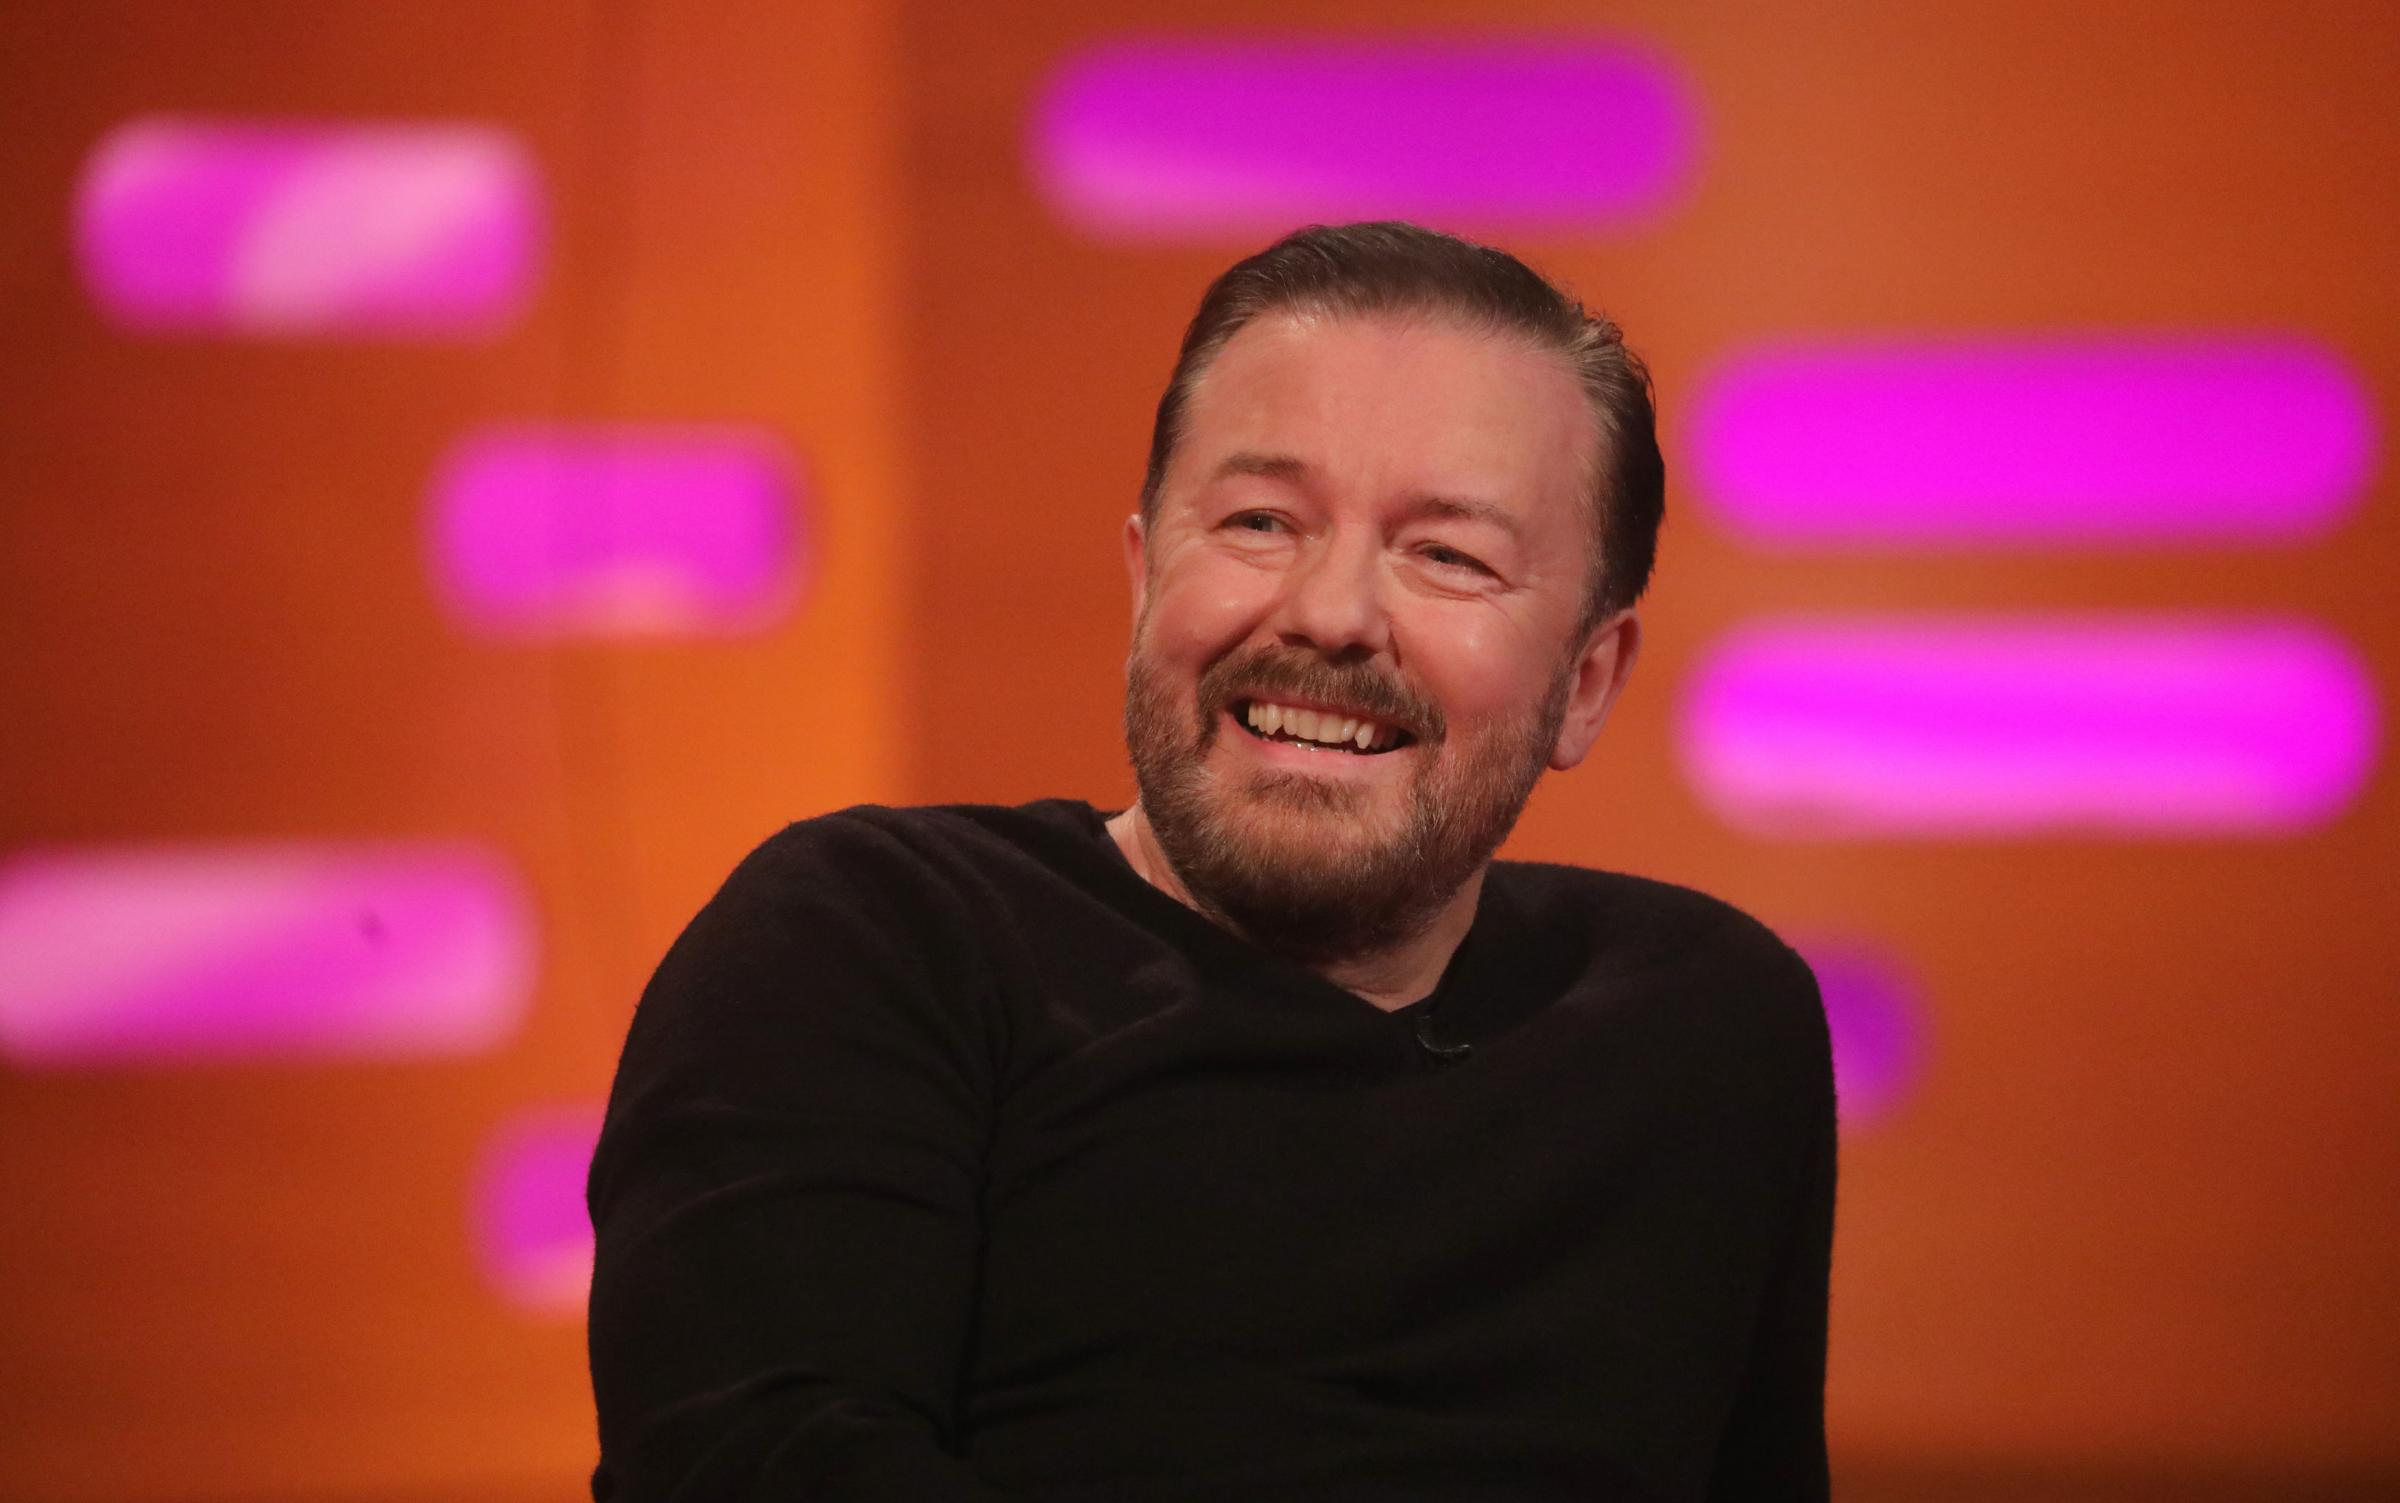 Fans ripped off as Ricky Gervais tickets fetch up to 600 times face value